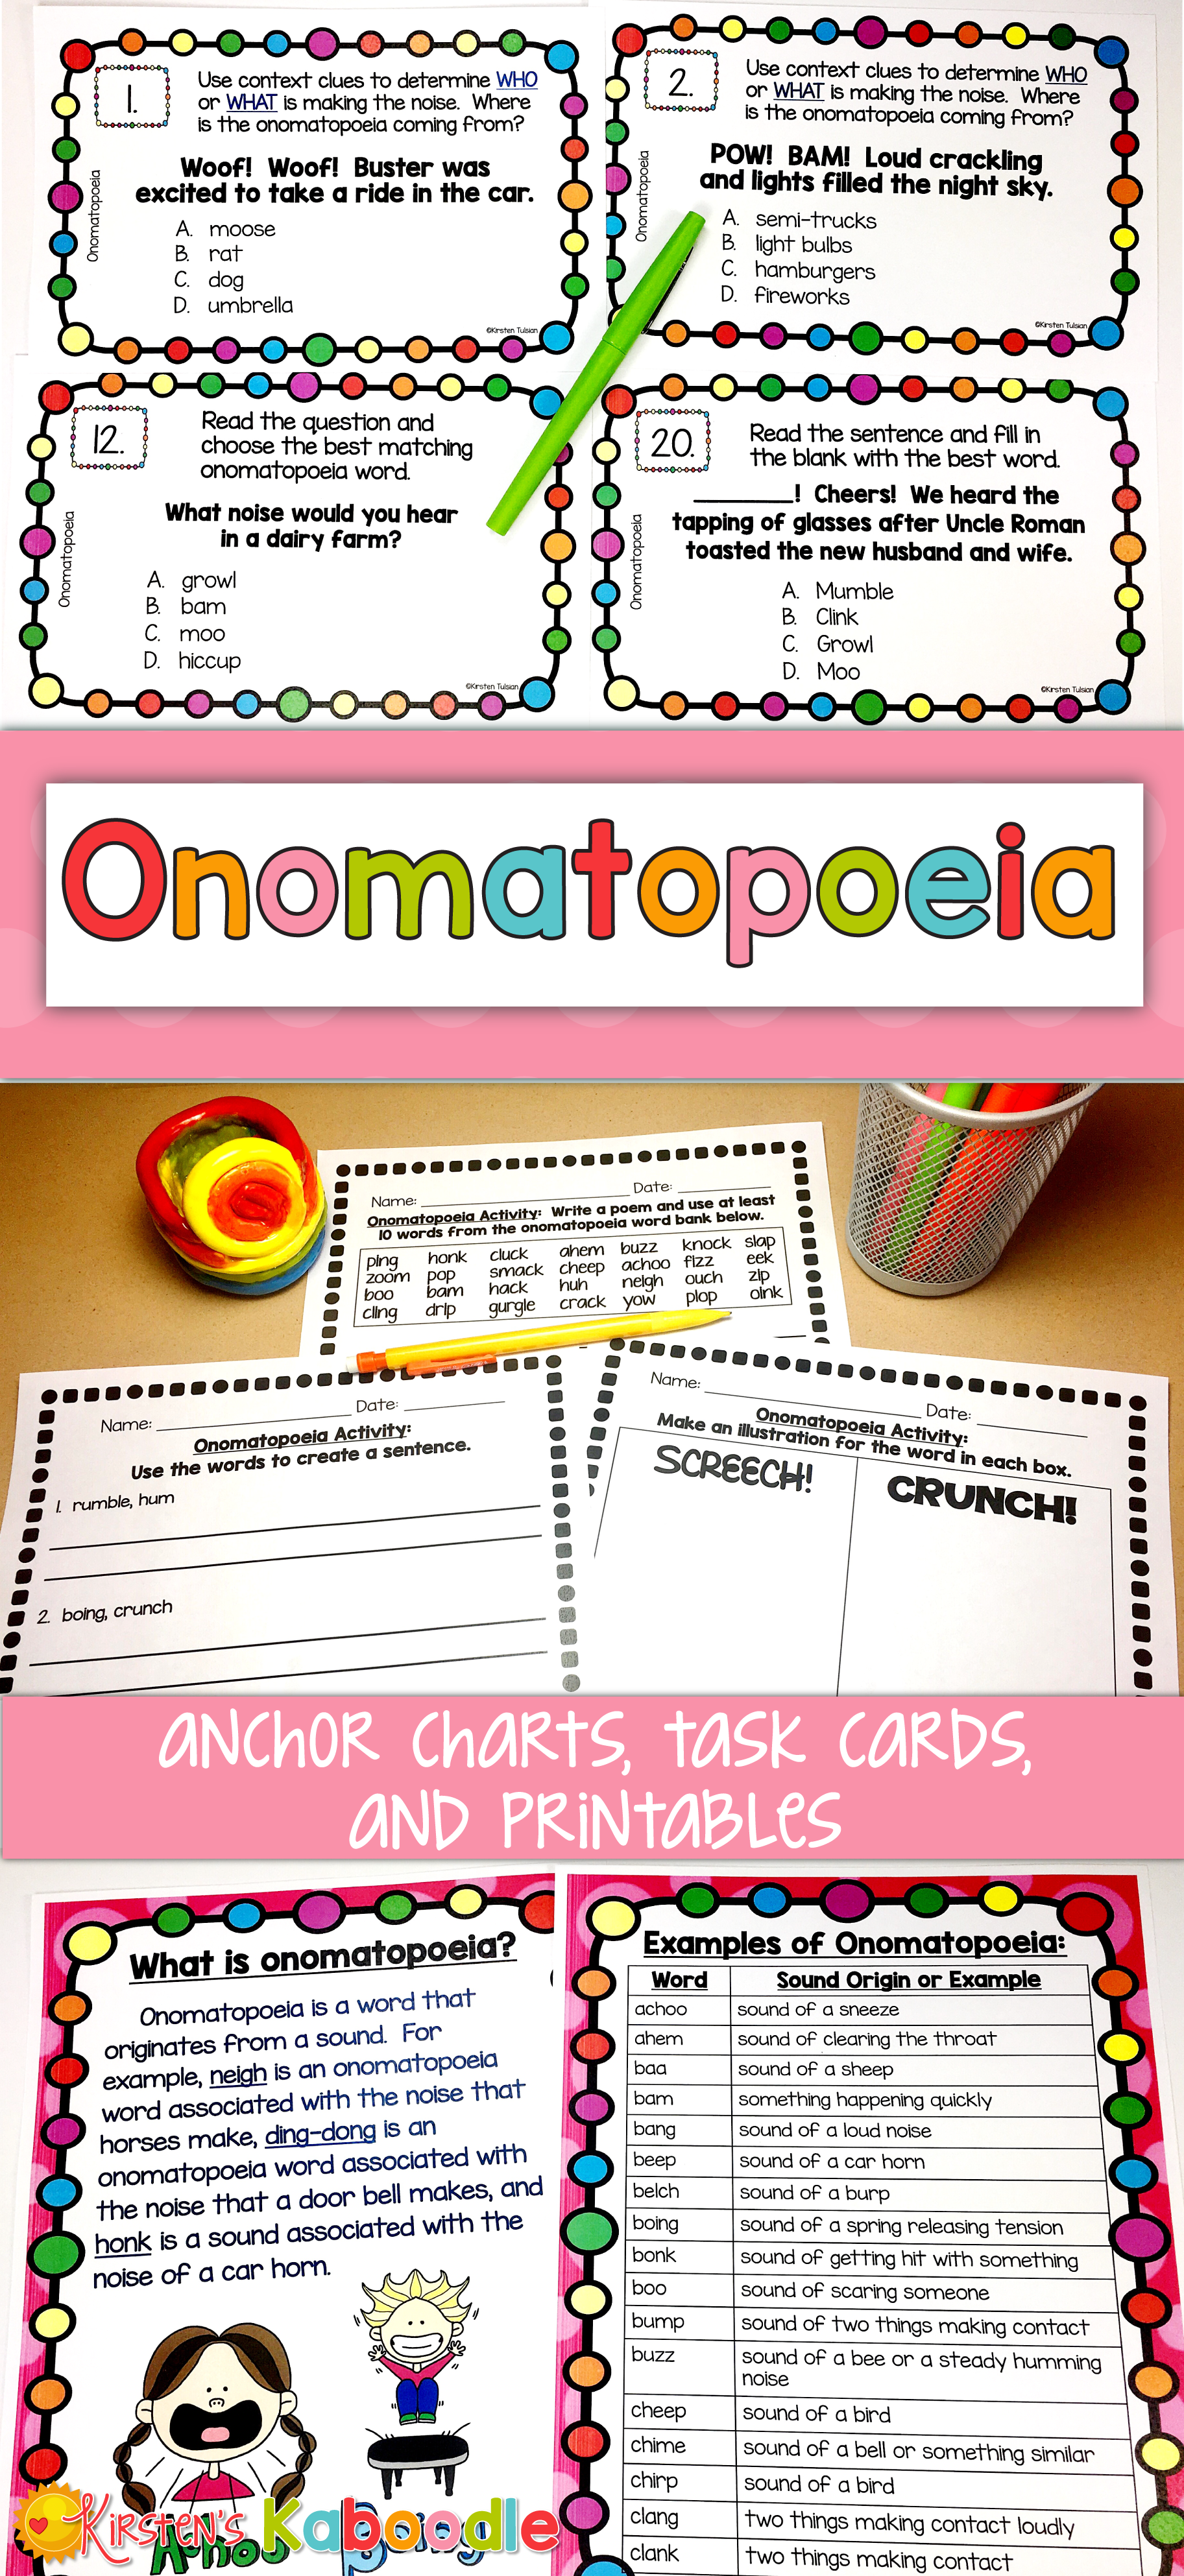 Onomatopoeia Activities And Task Cards